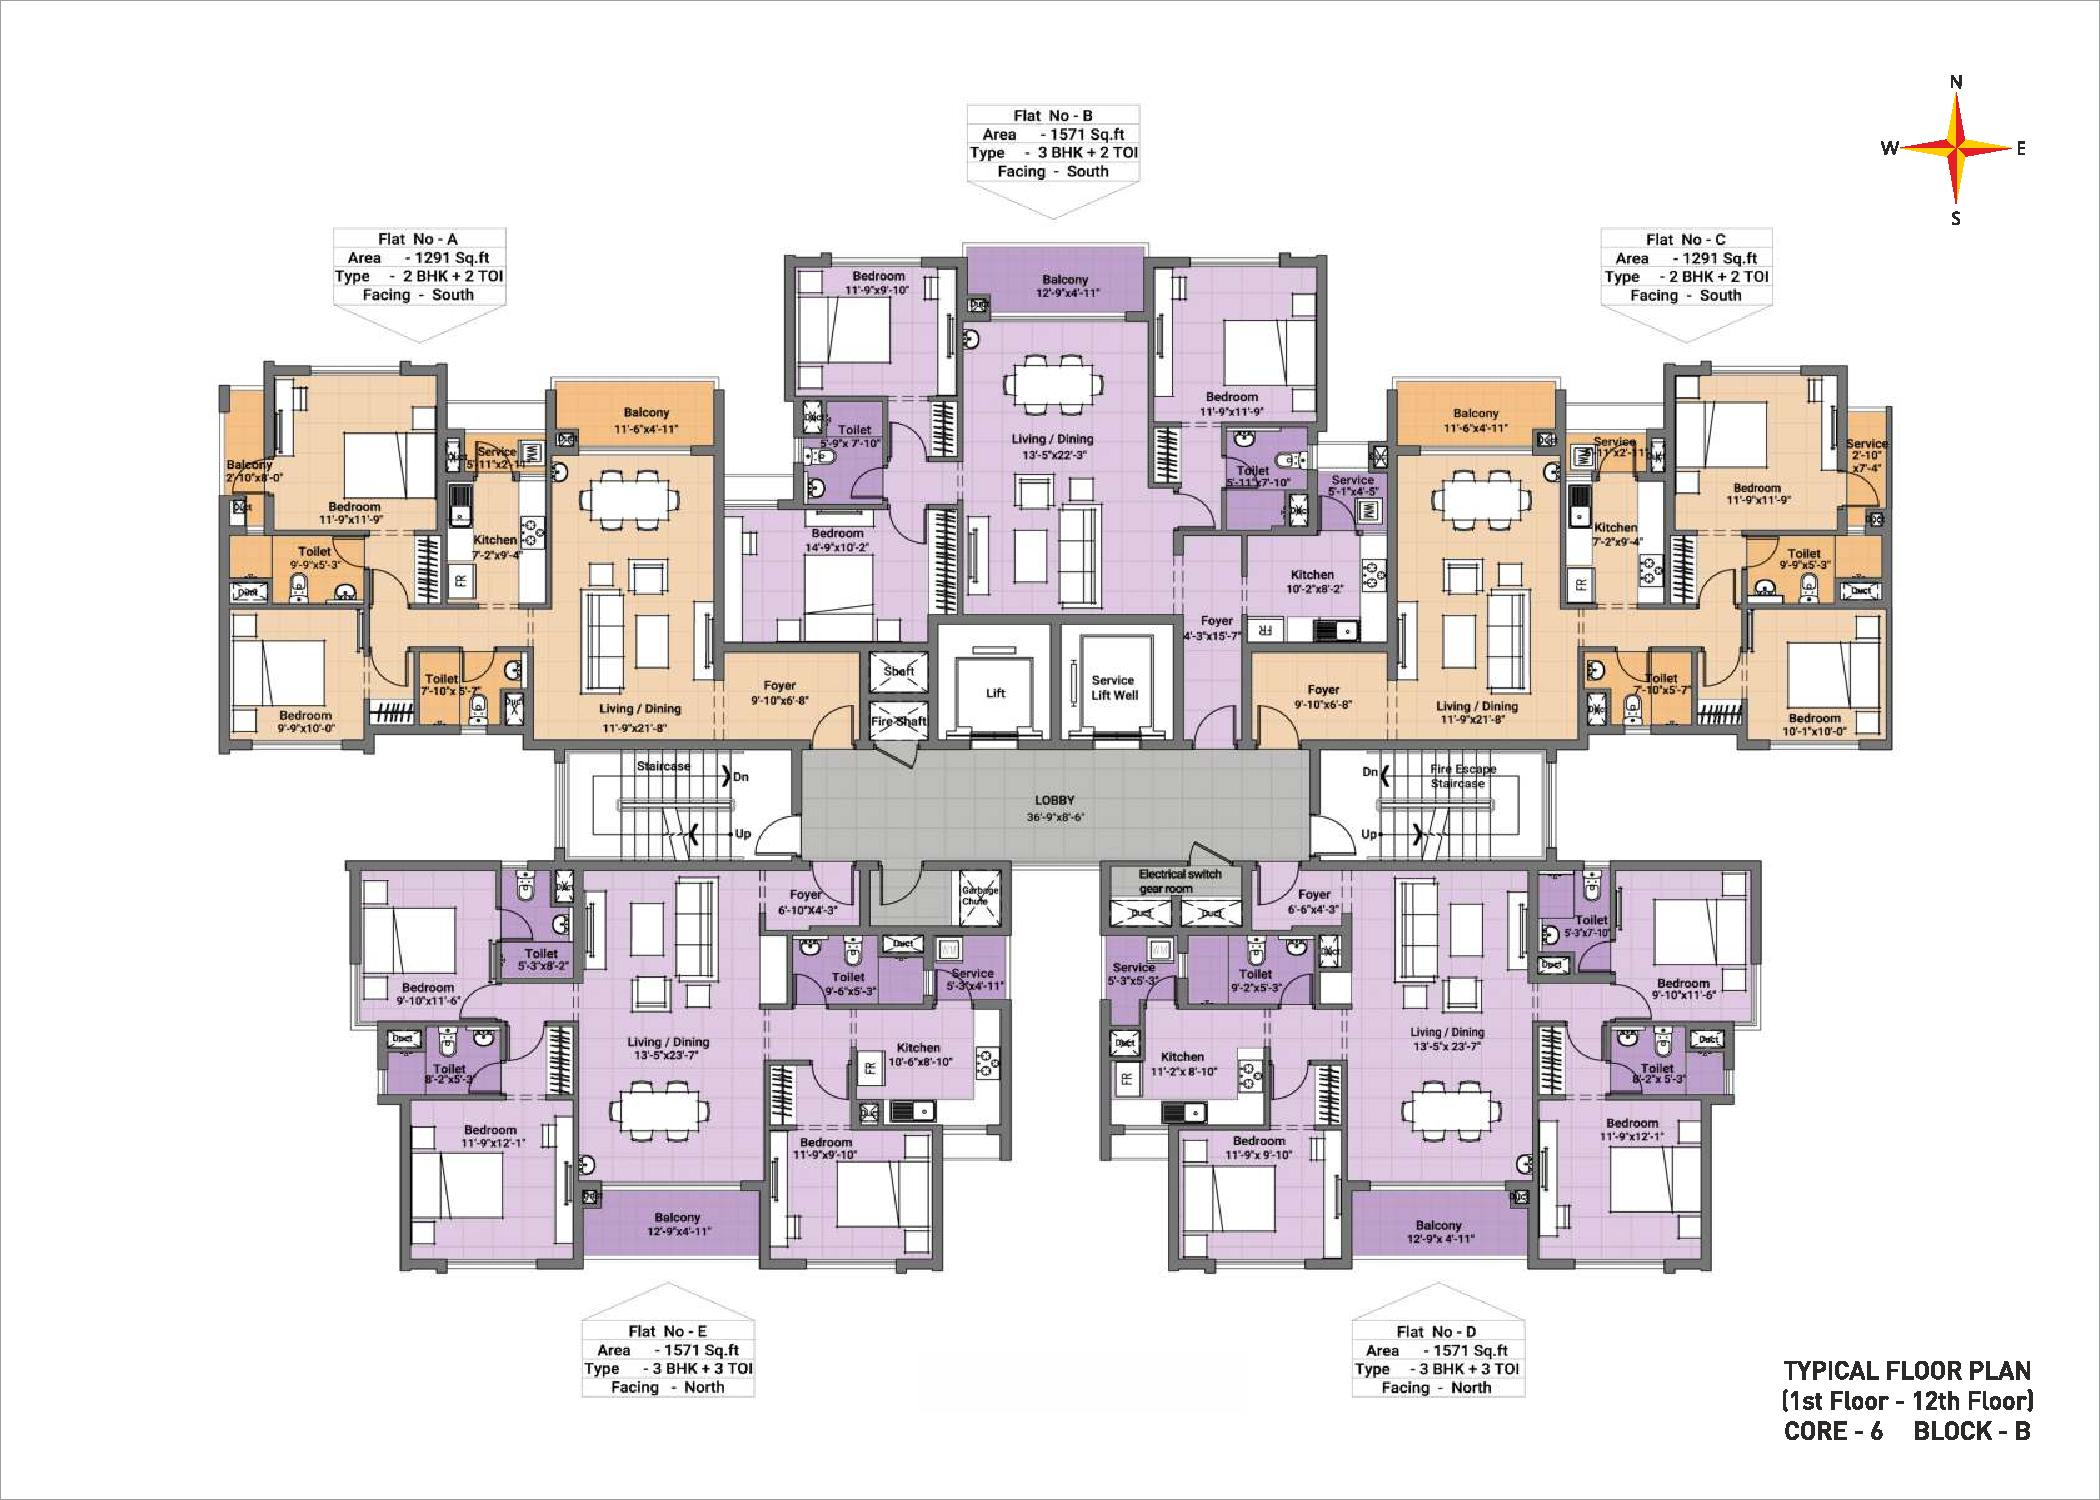 Typical floor plan - Block B Core 6(1-12th floor)